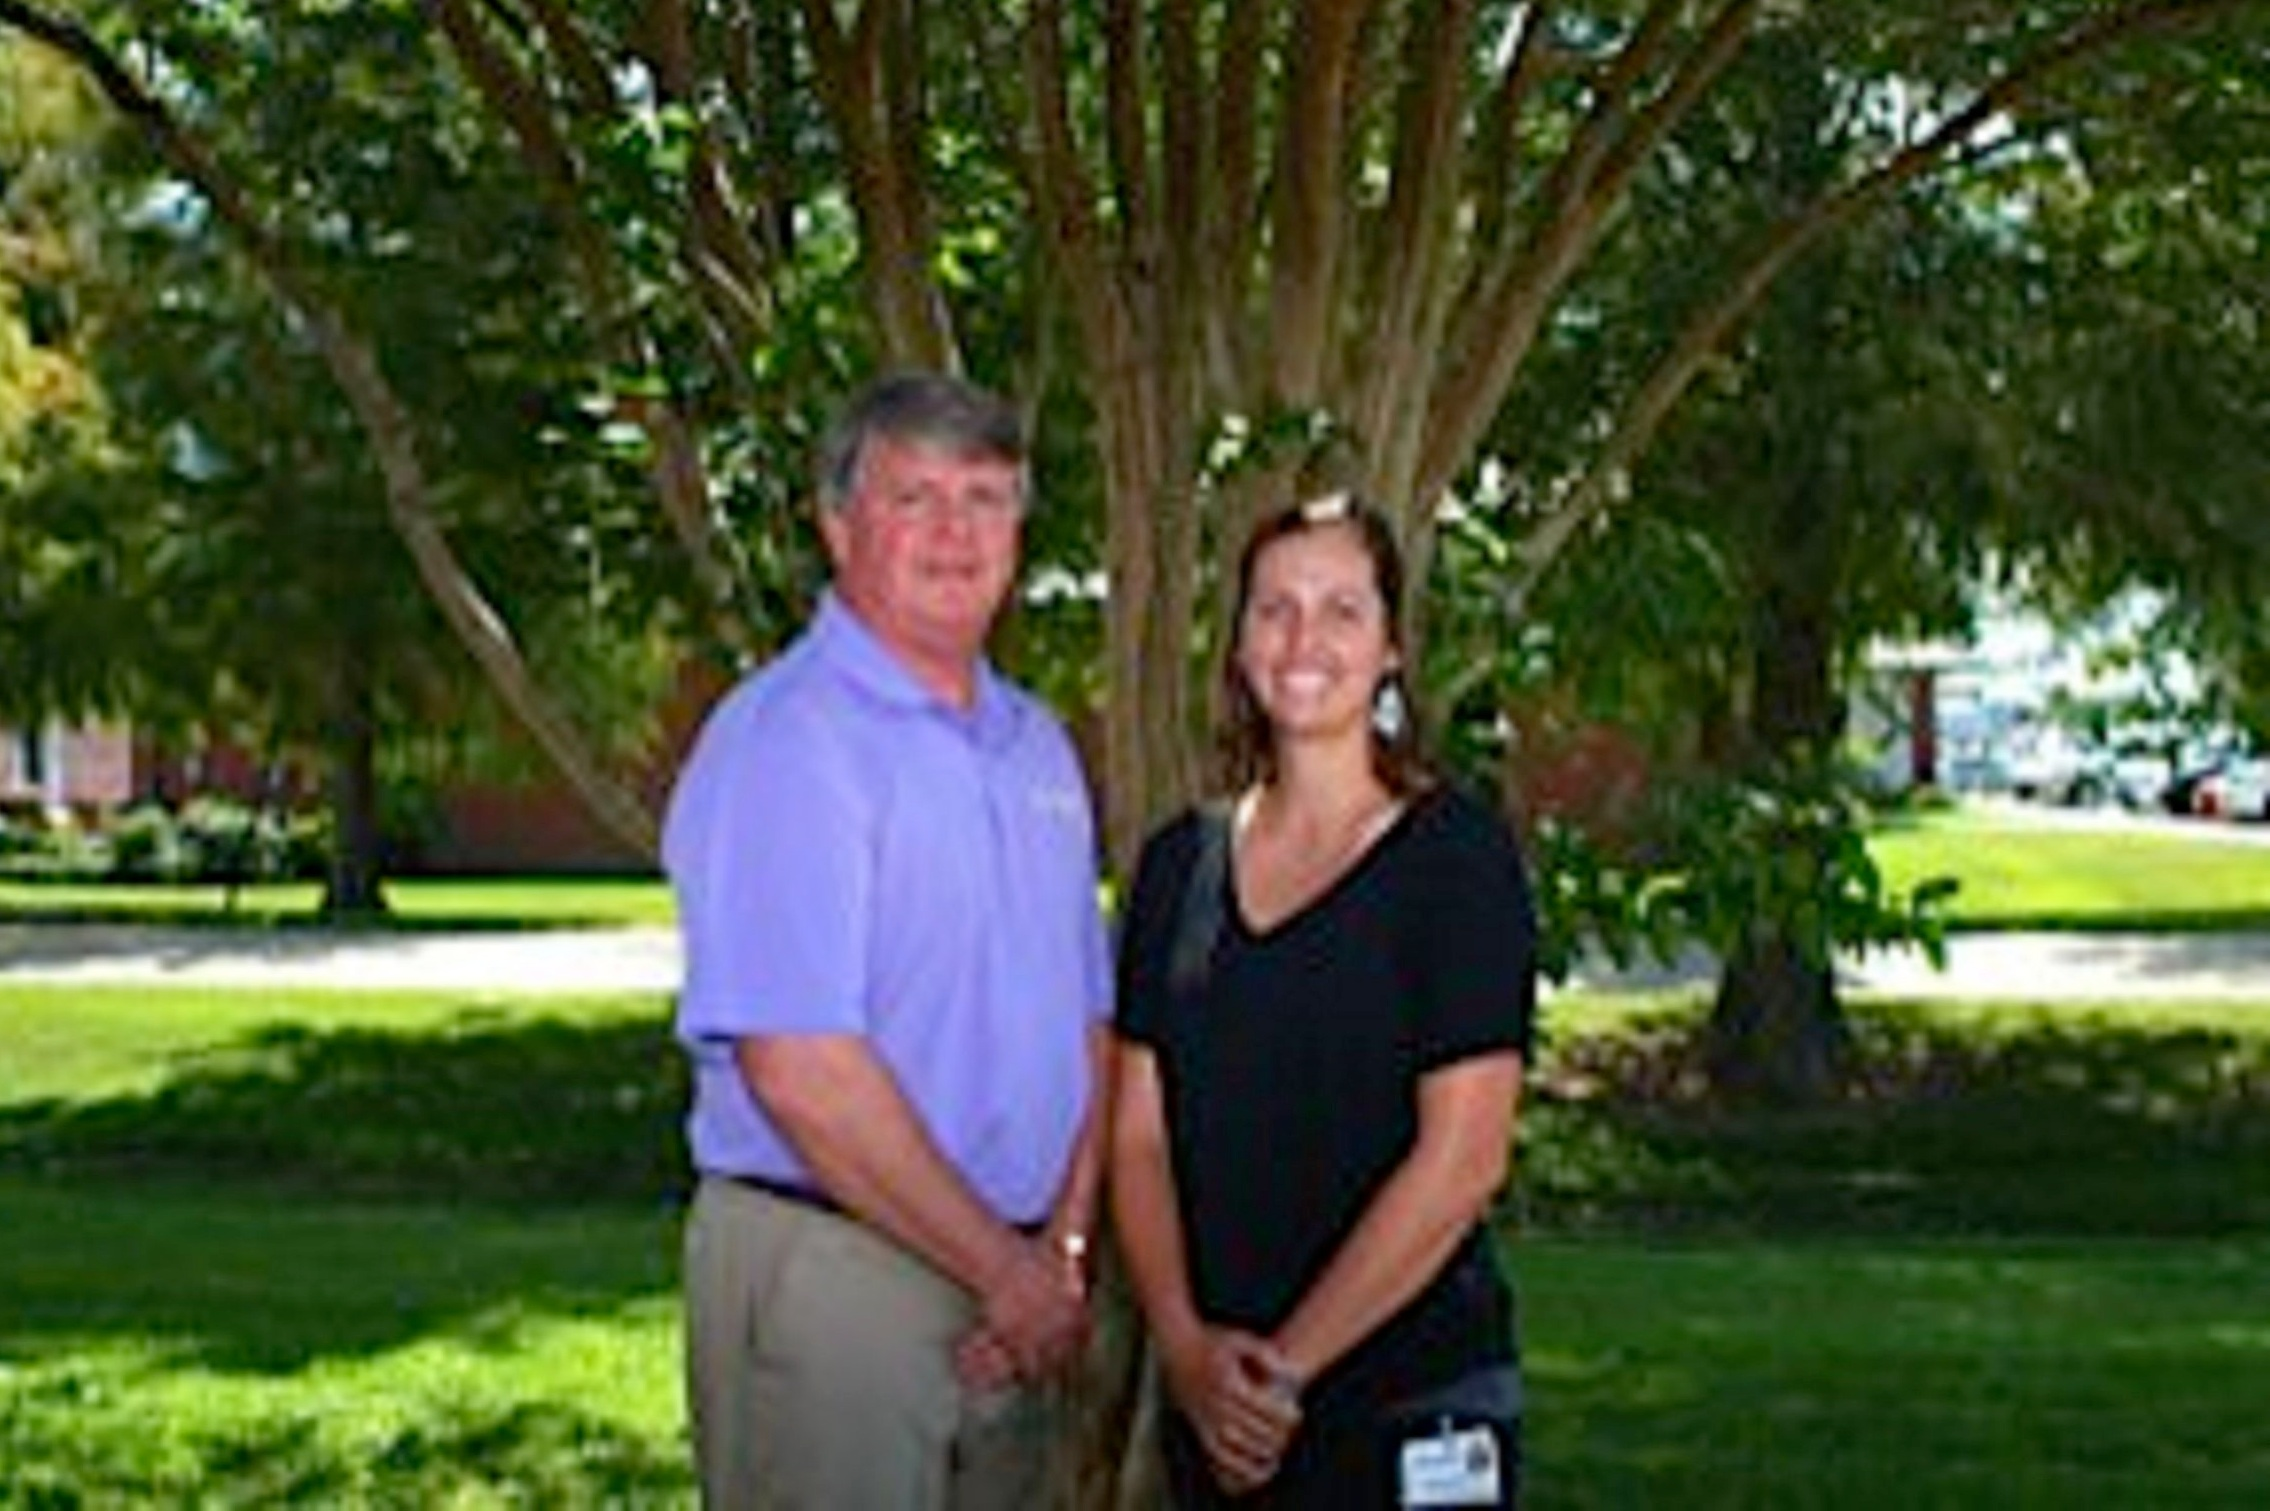 John Allen, P.T., Director and Brittany Ezell-LeJeune, P.T., D.PT.